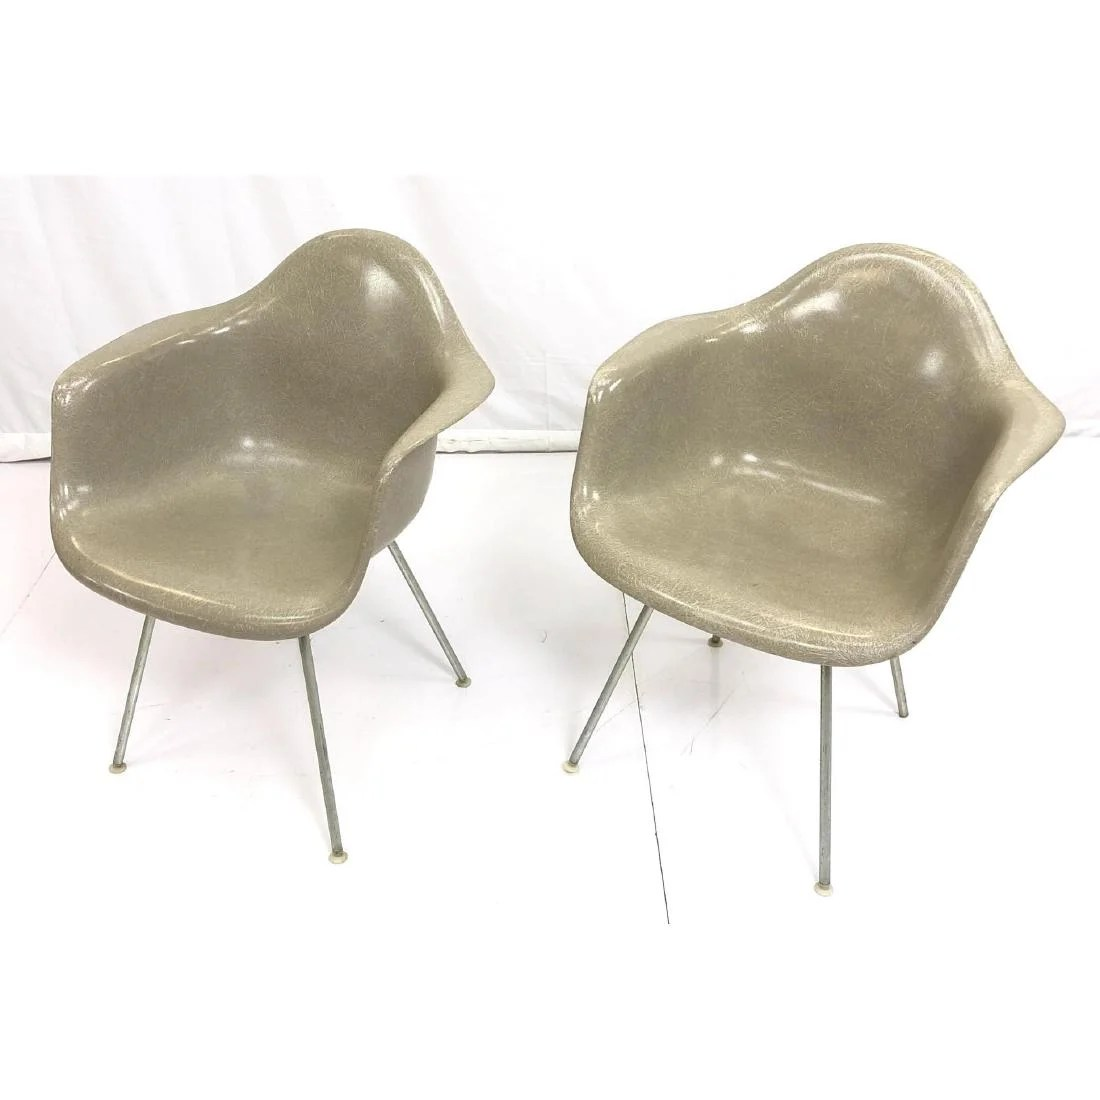 Herman Miller Shell Chair Pr Charles Eames For Herman Miller Shell Chairs Feb 19 2019 Uniques Antiques Inc In Pa On Liveauctioneers